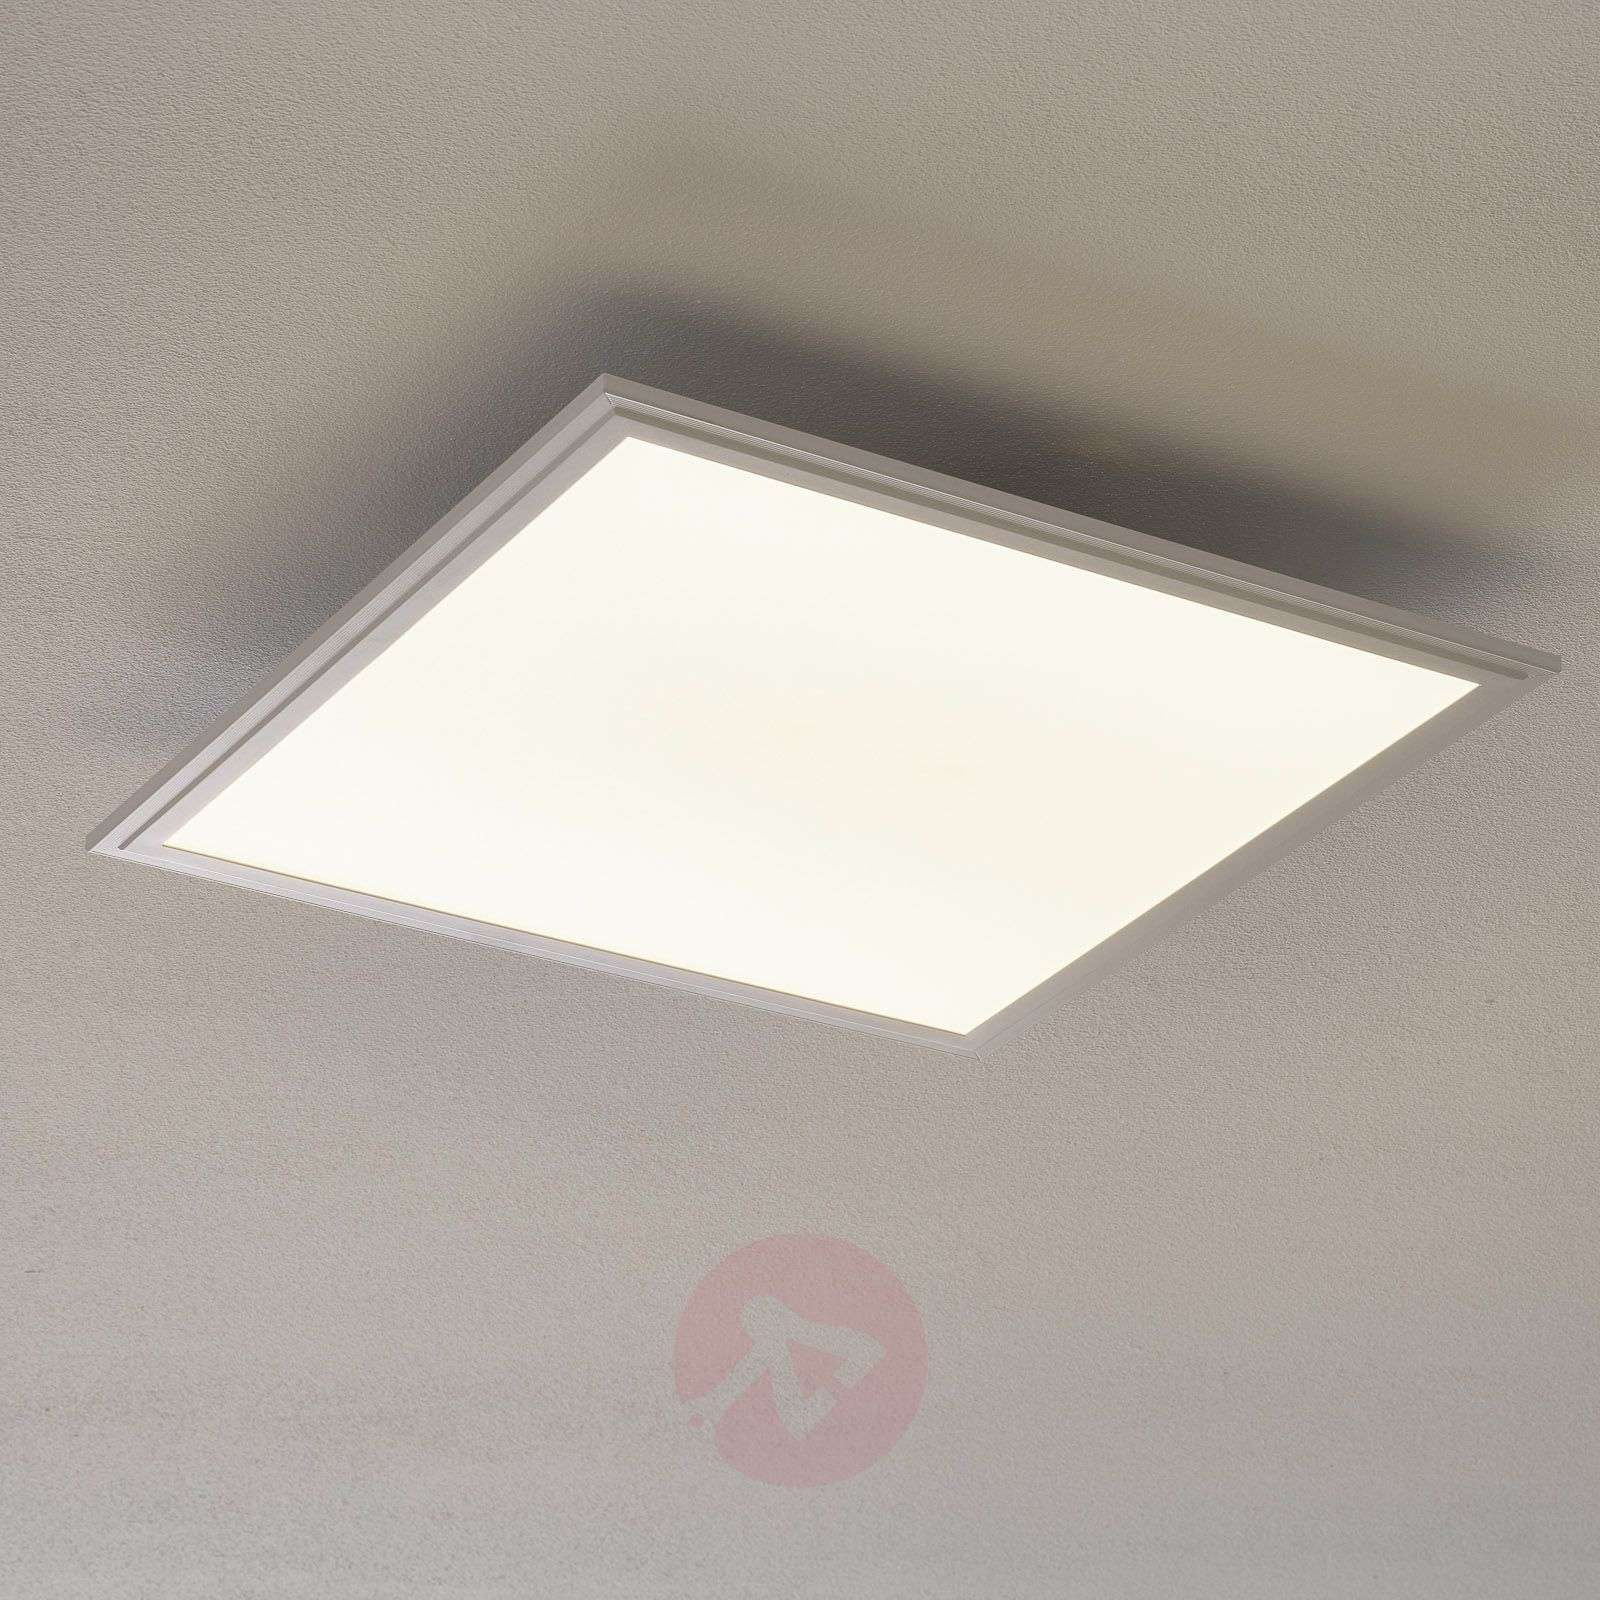 EGLO connect Salobrena-C panel LED, 45x45 cm-3032175-01